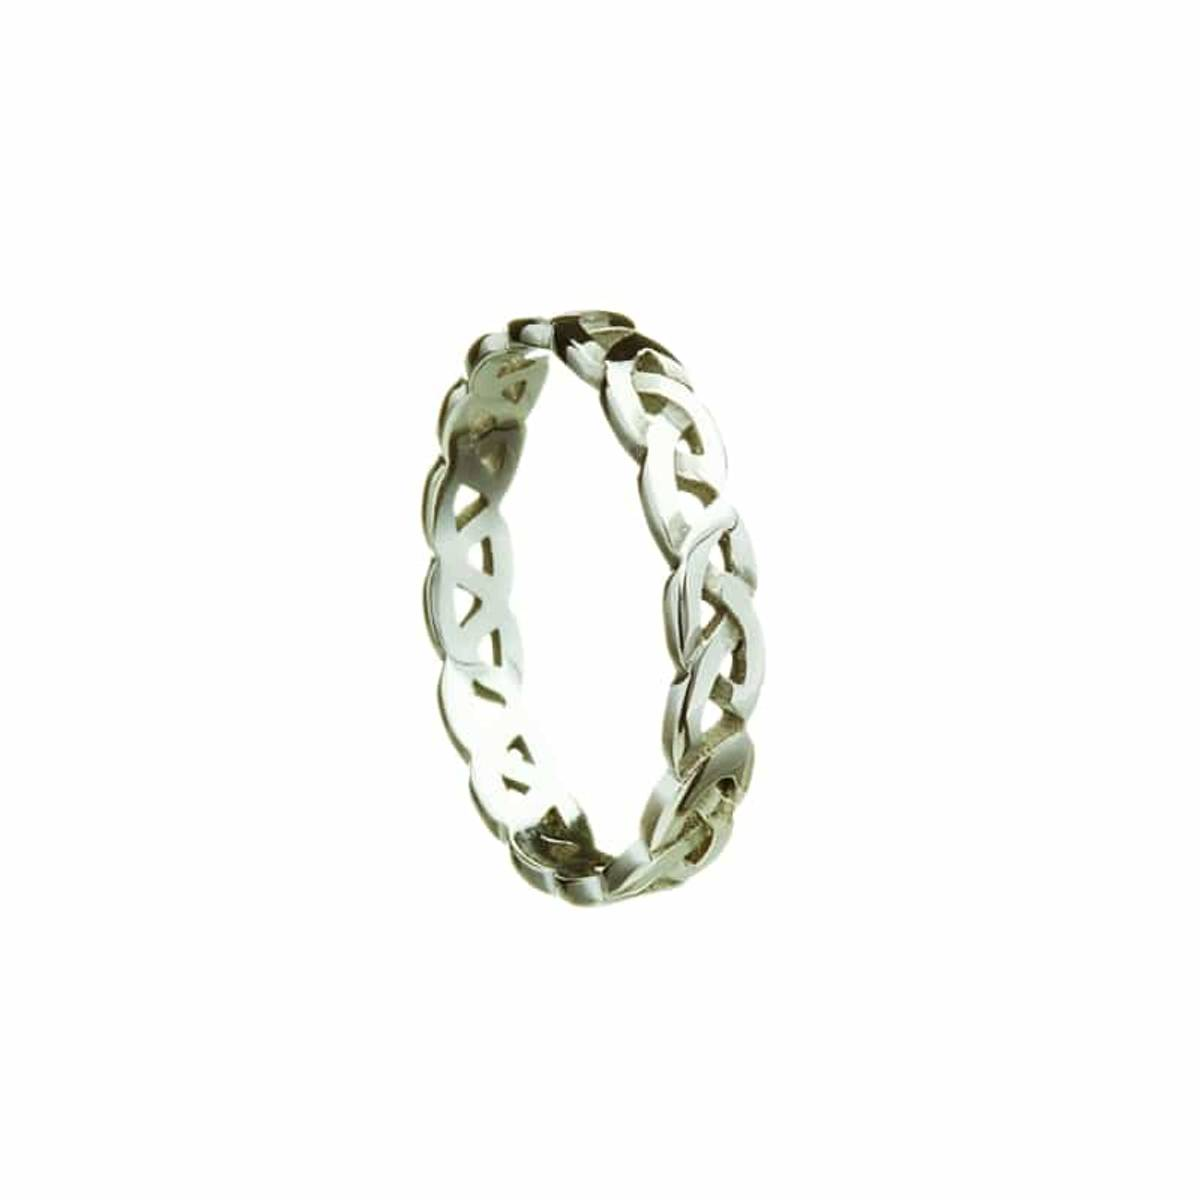 10 ct gents Celtic knot narrow band larger sizes